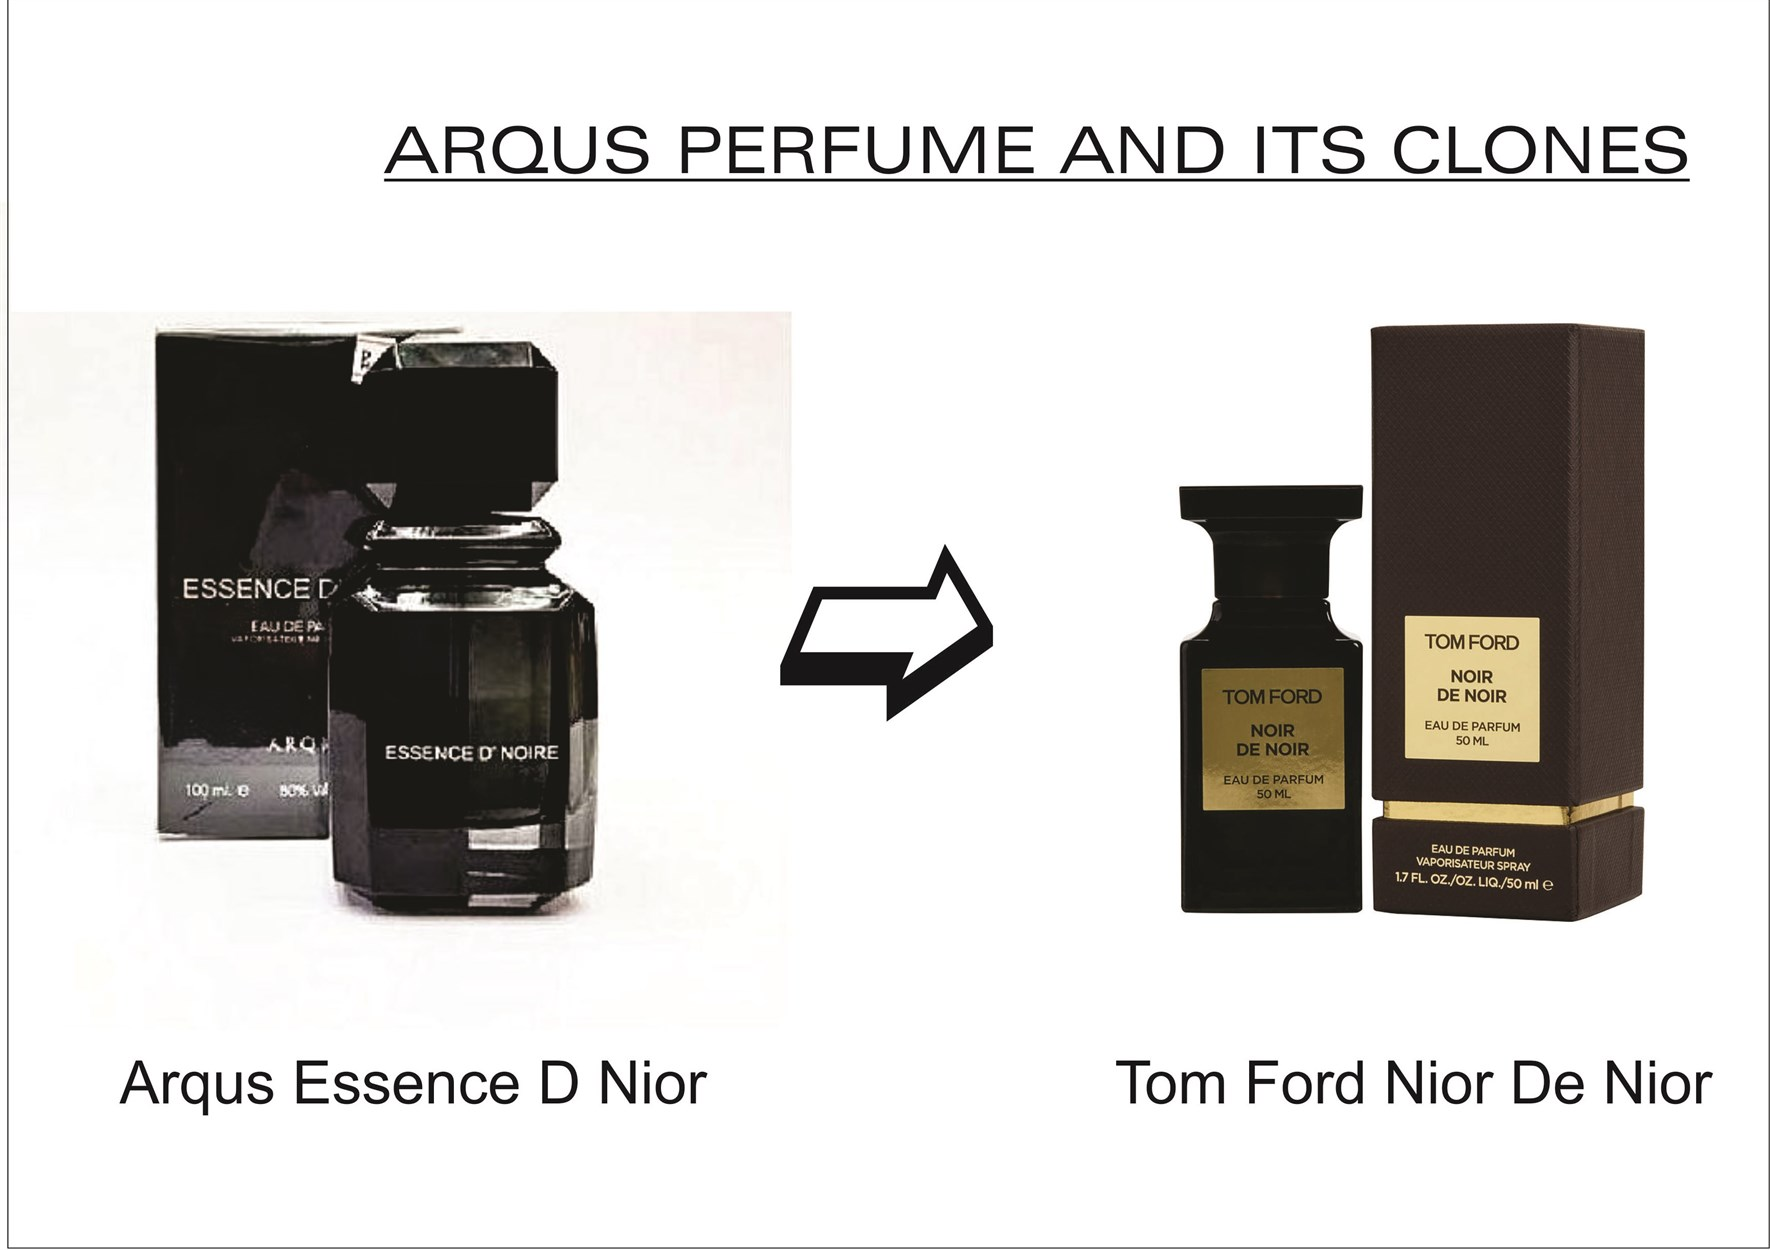 arqus-perfumes-/tom-ford-noir-de-nior-perfume-for-men-and-women-100-ml-edp